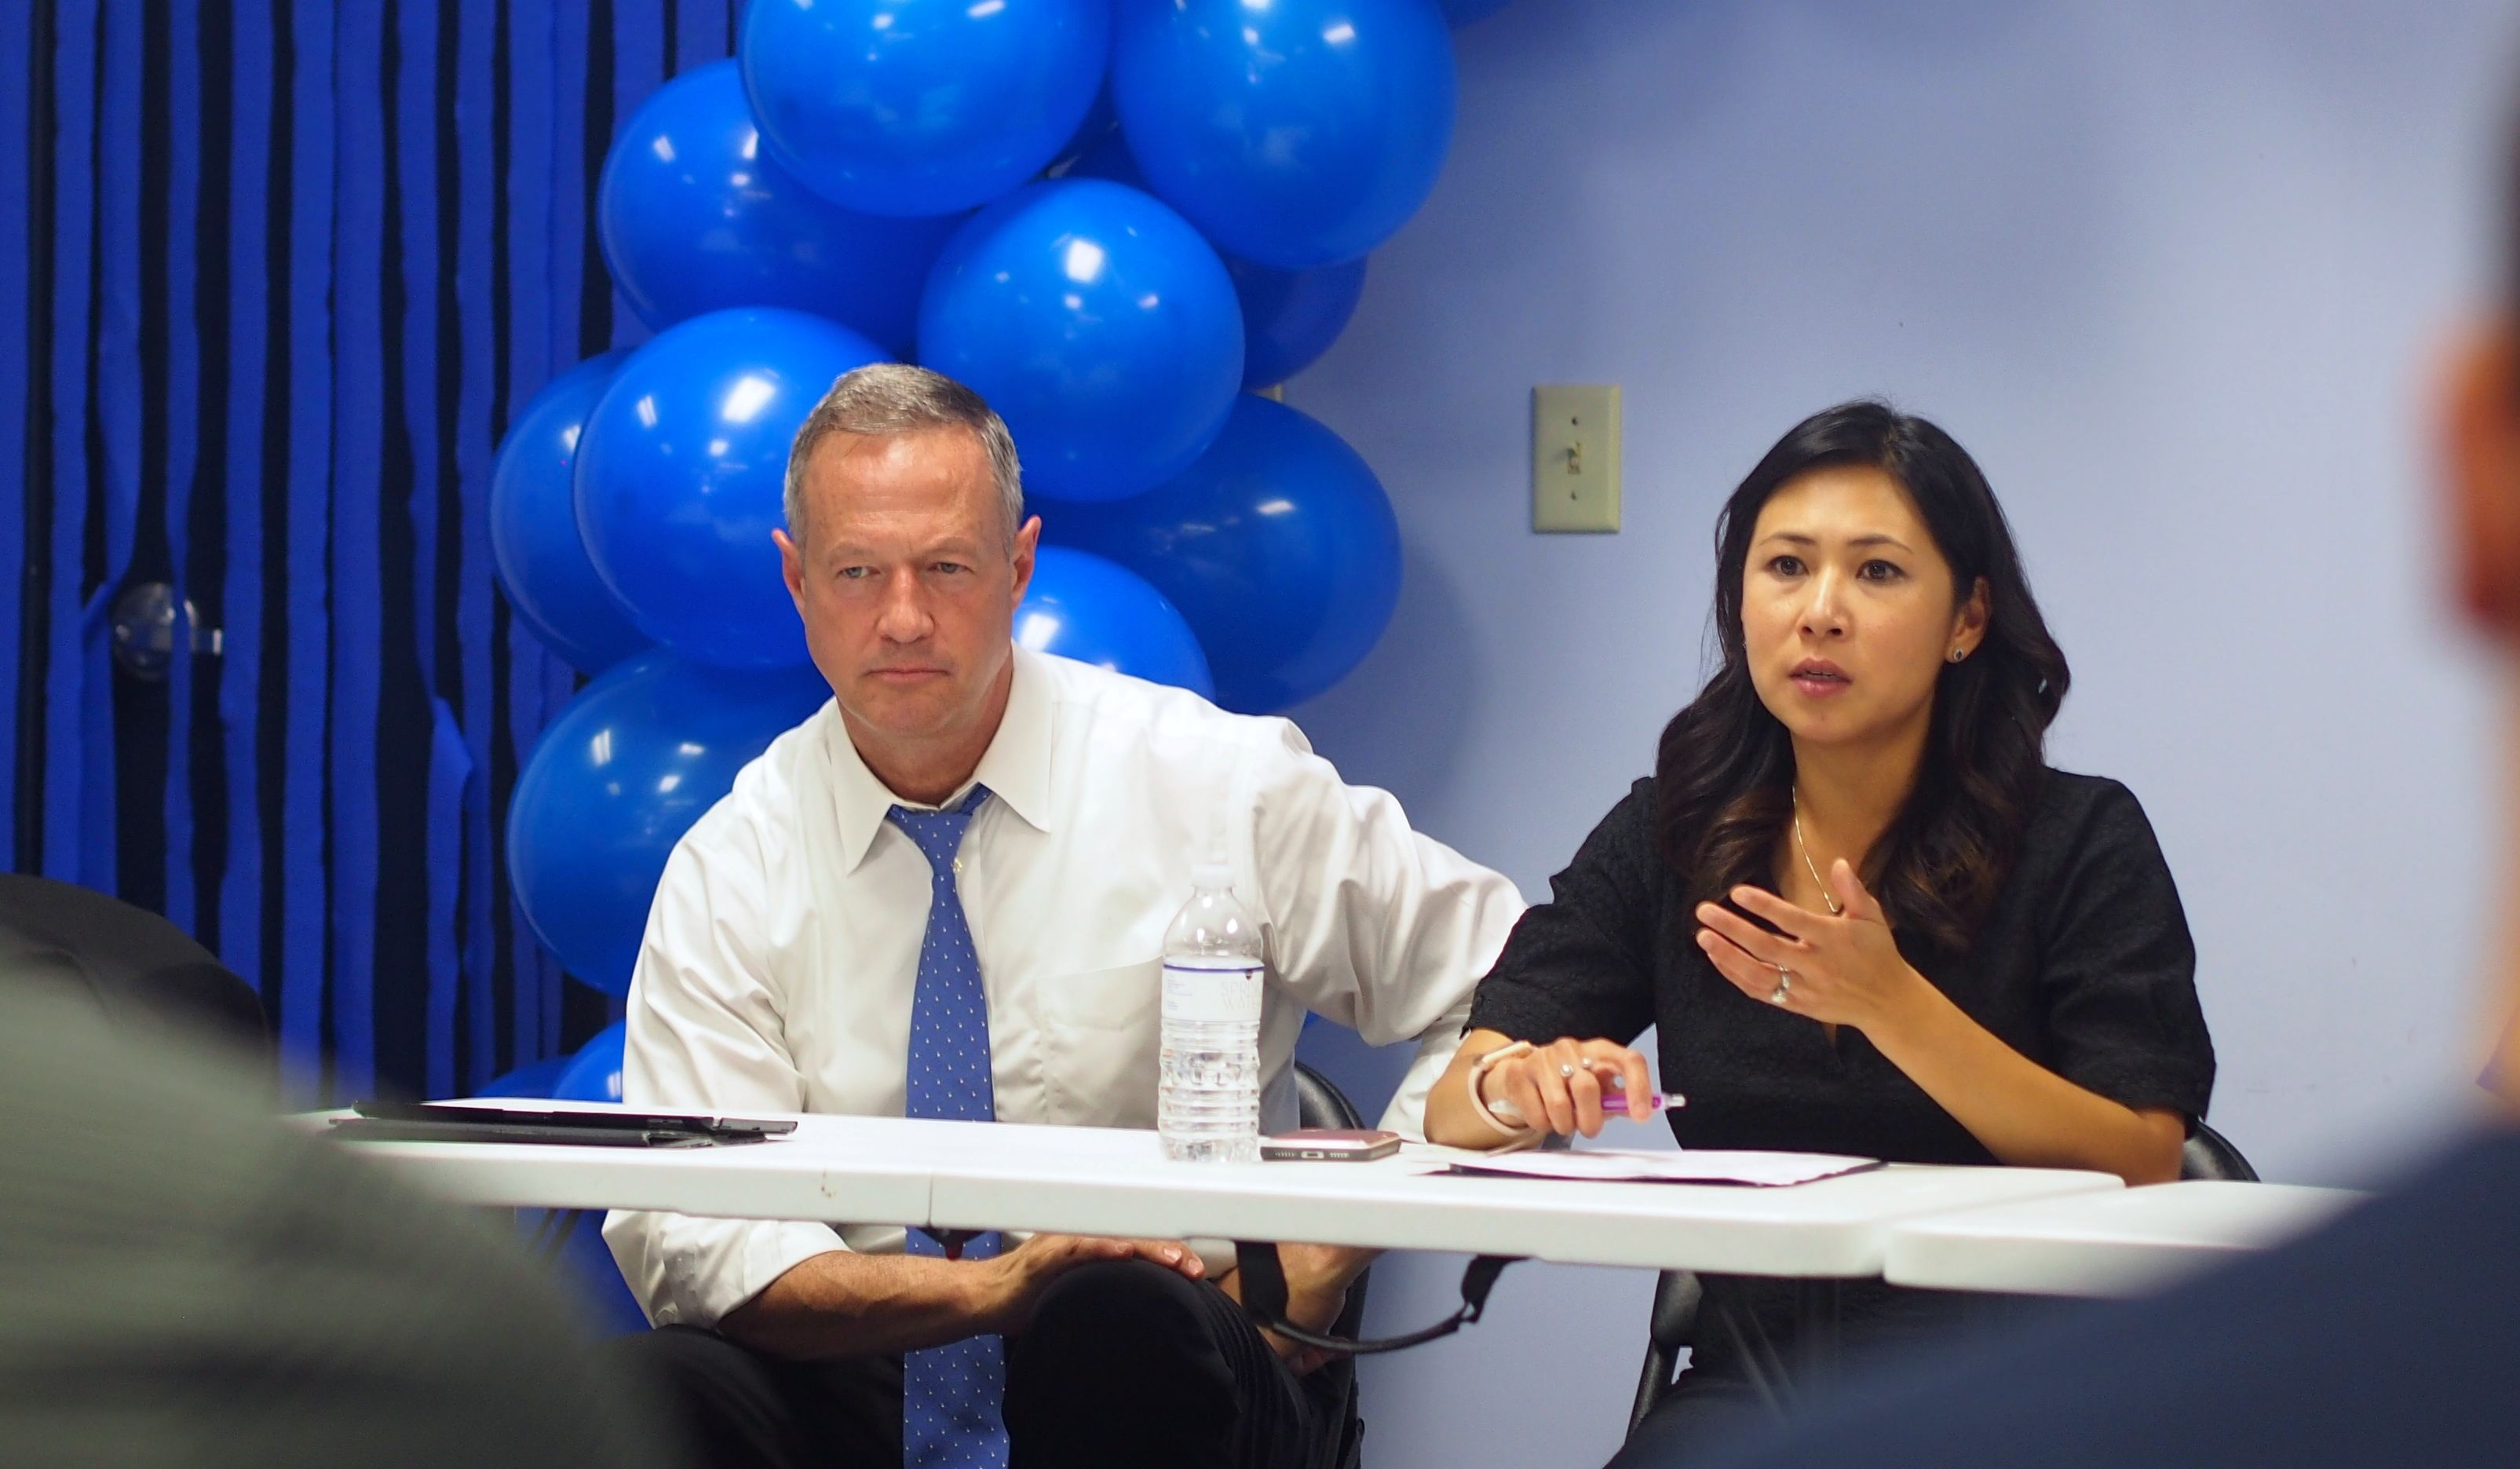 Martin-OMalley-and-Stephanie-Murphy-3.jpg